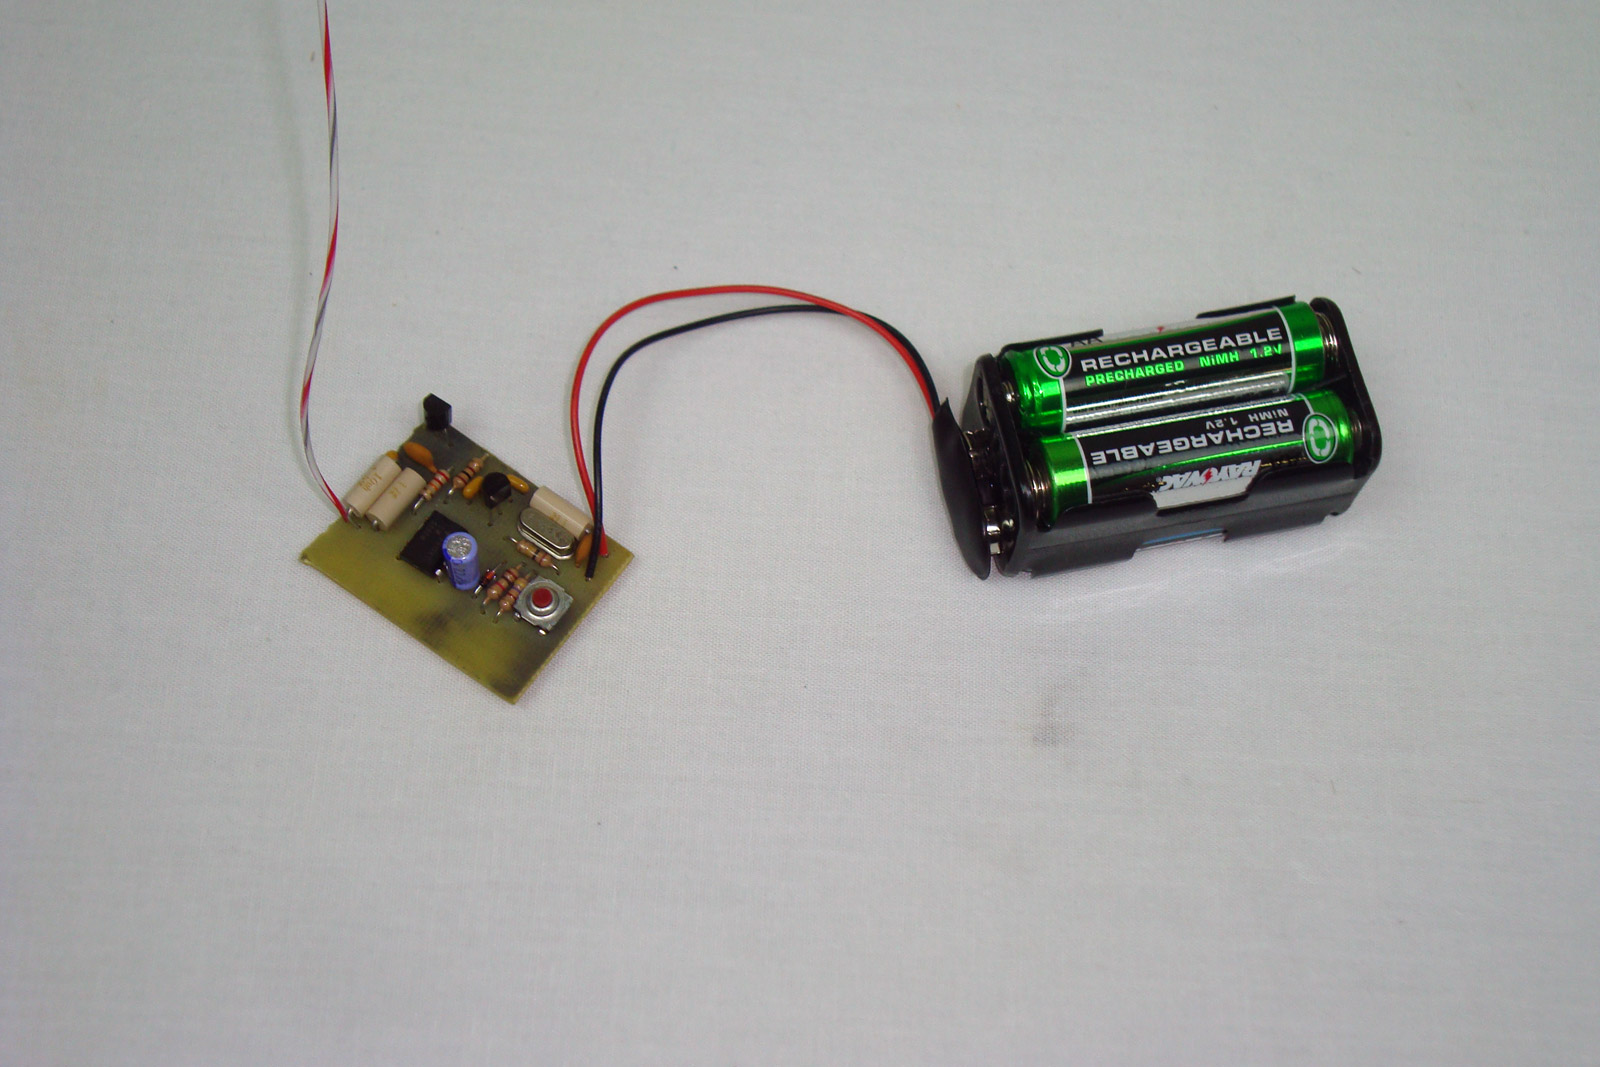 hight resolution of simple pyro rf transmitter 27 mhz